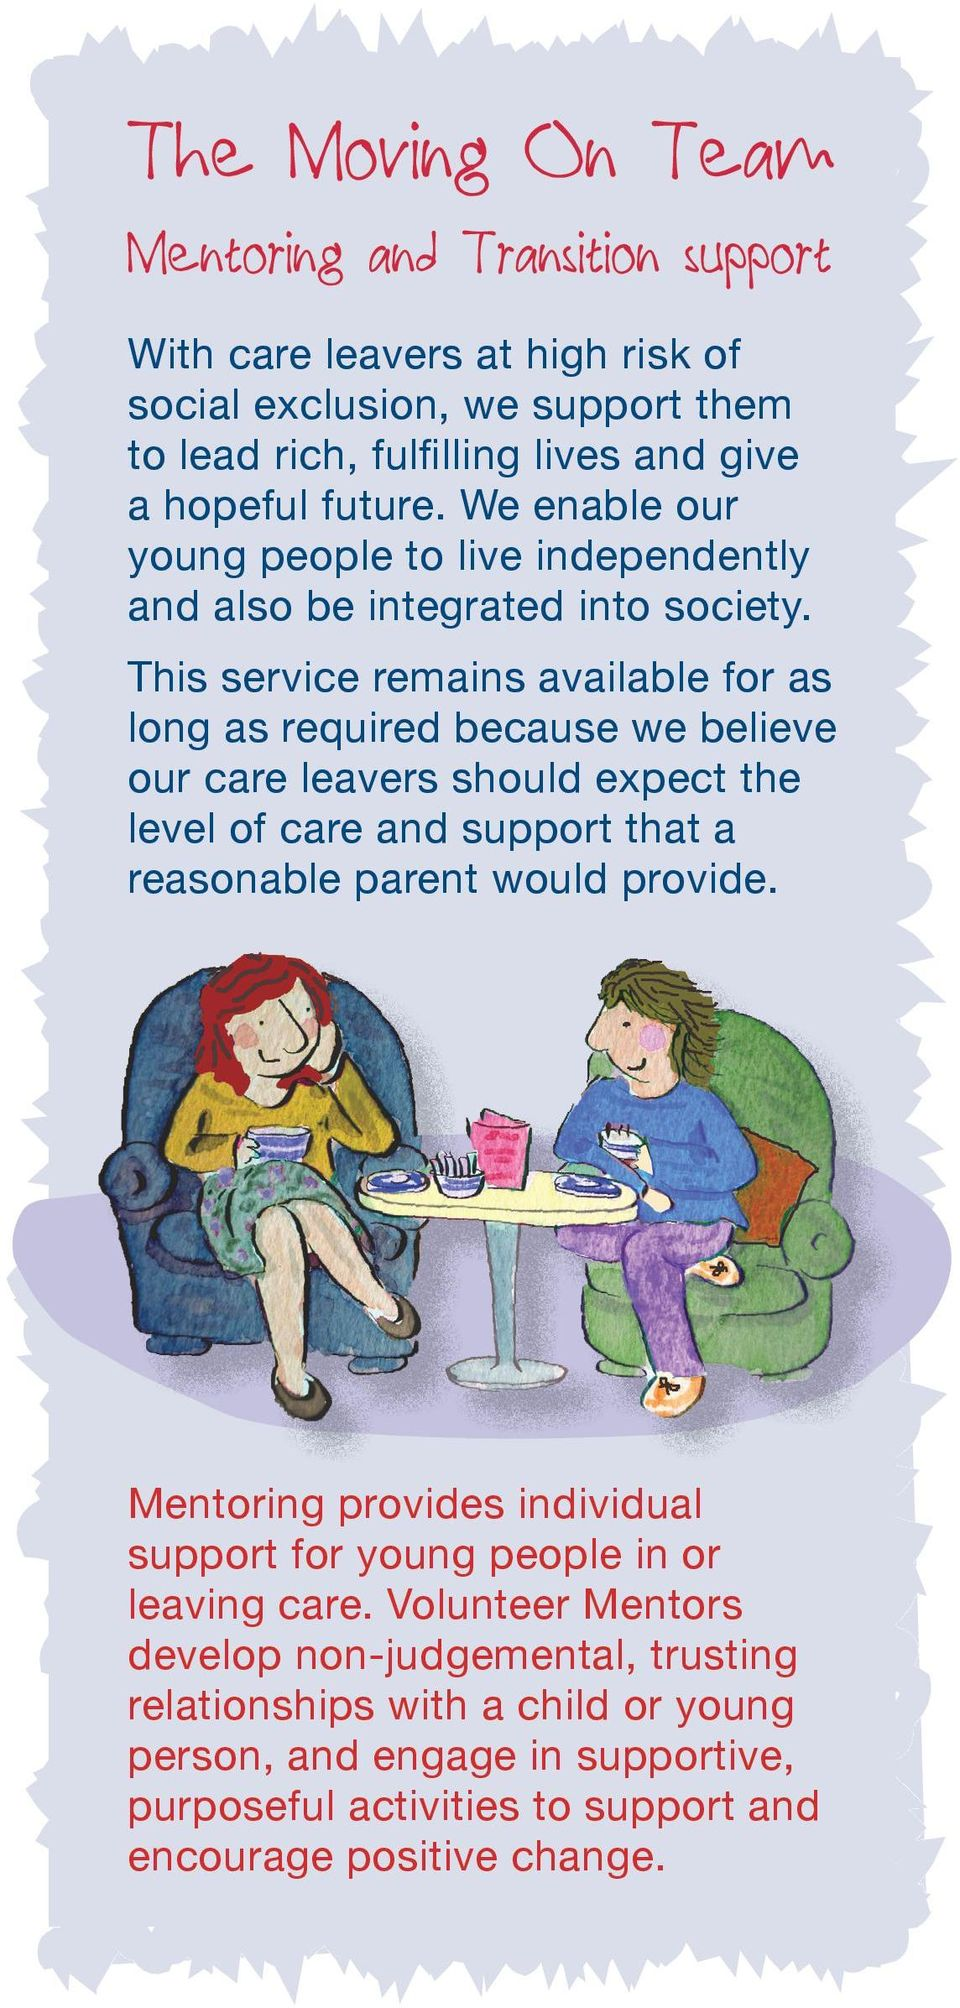 This service remains available for as long as required because we believe our care leavers should expect the level of care and support that a reasonable parent